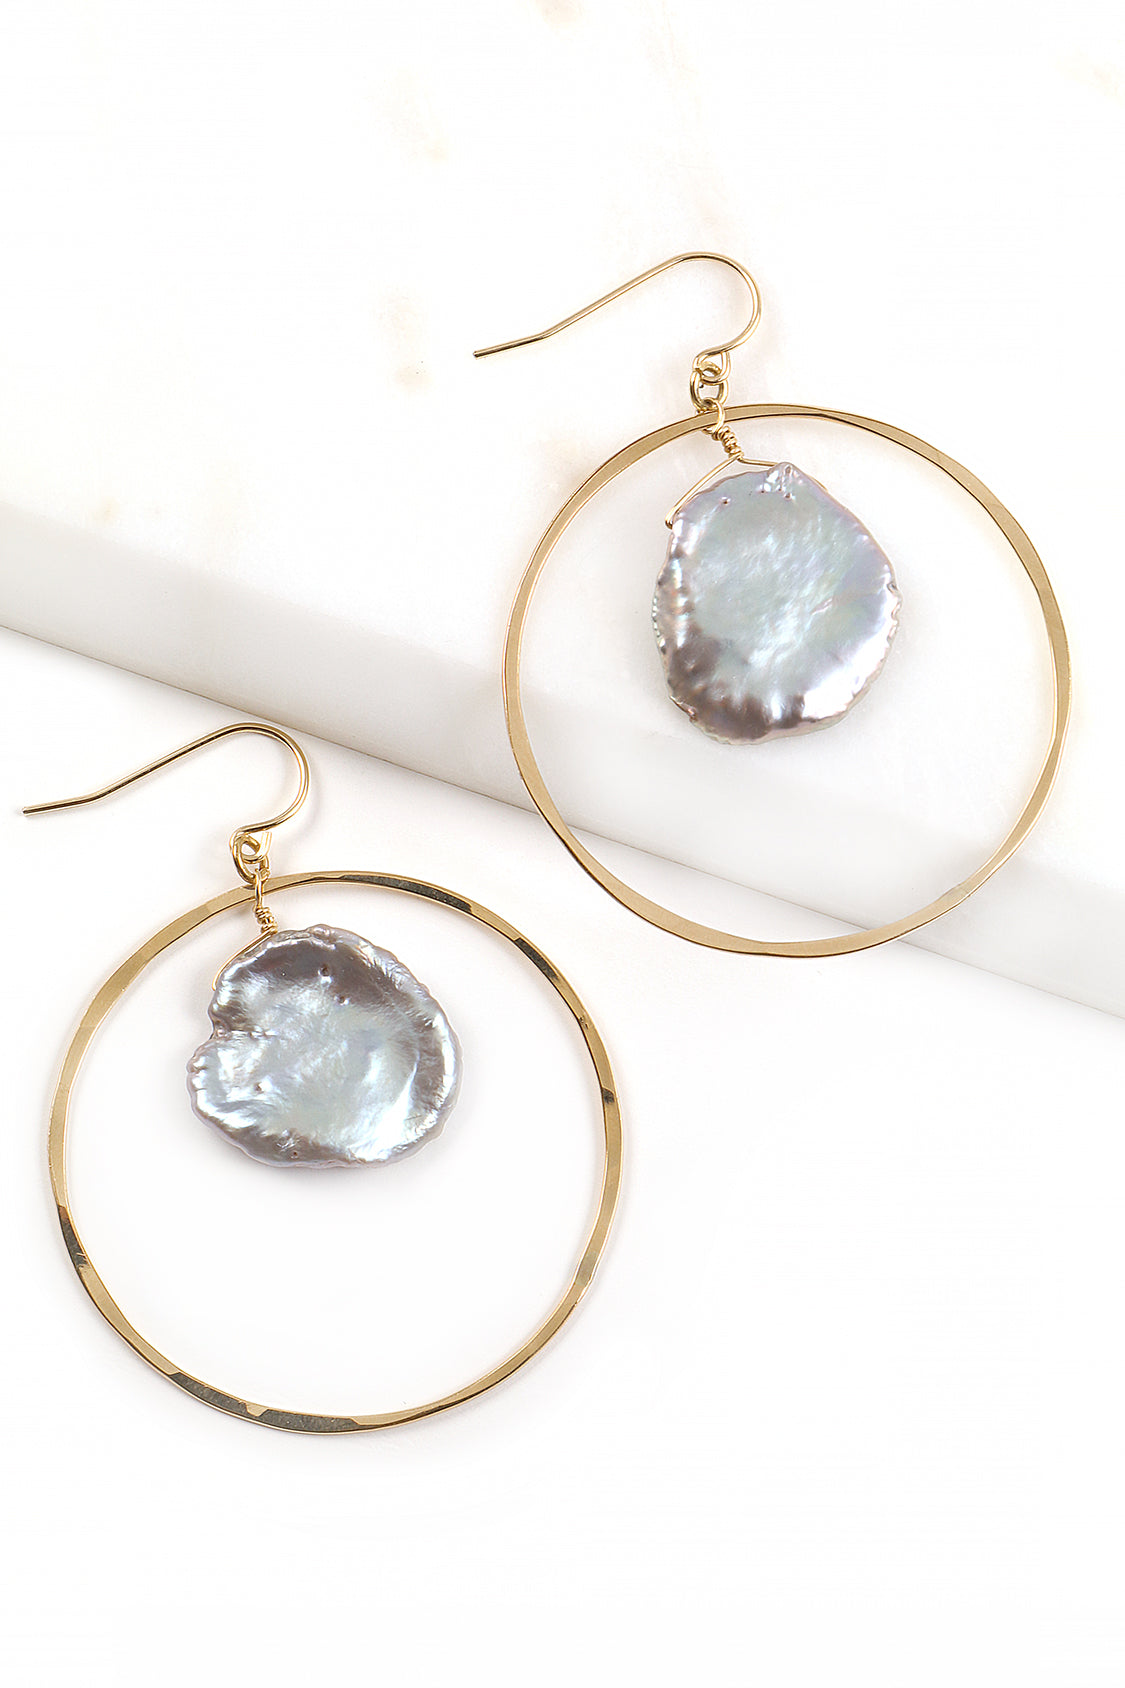 Keshi and Hammered Hoop Earrings